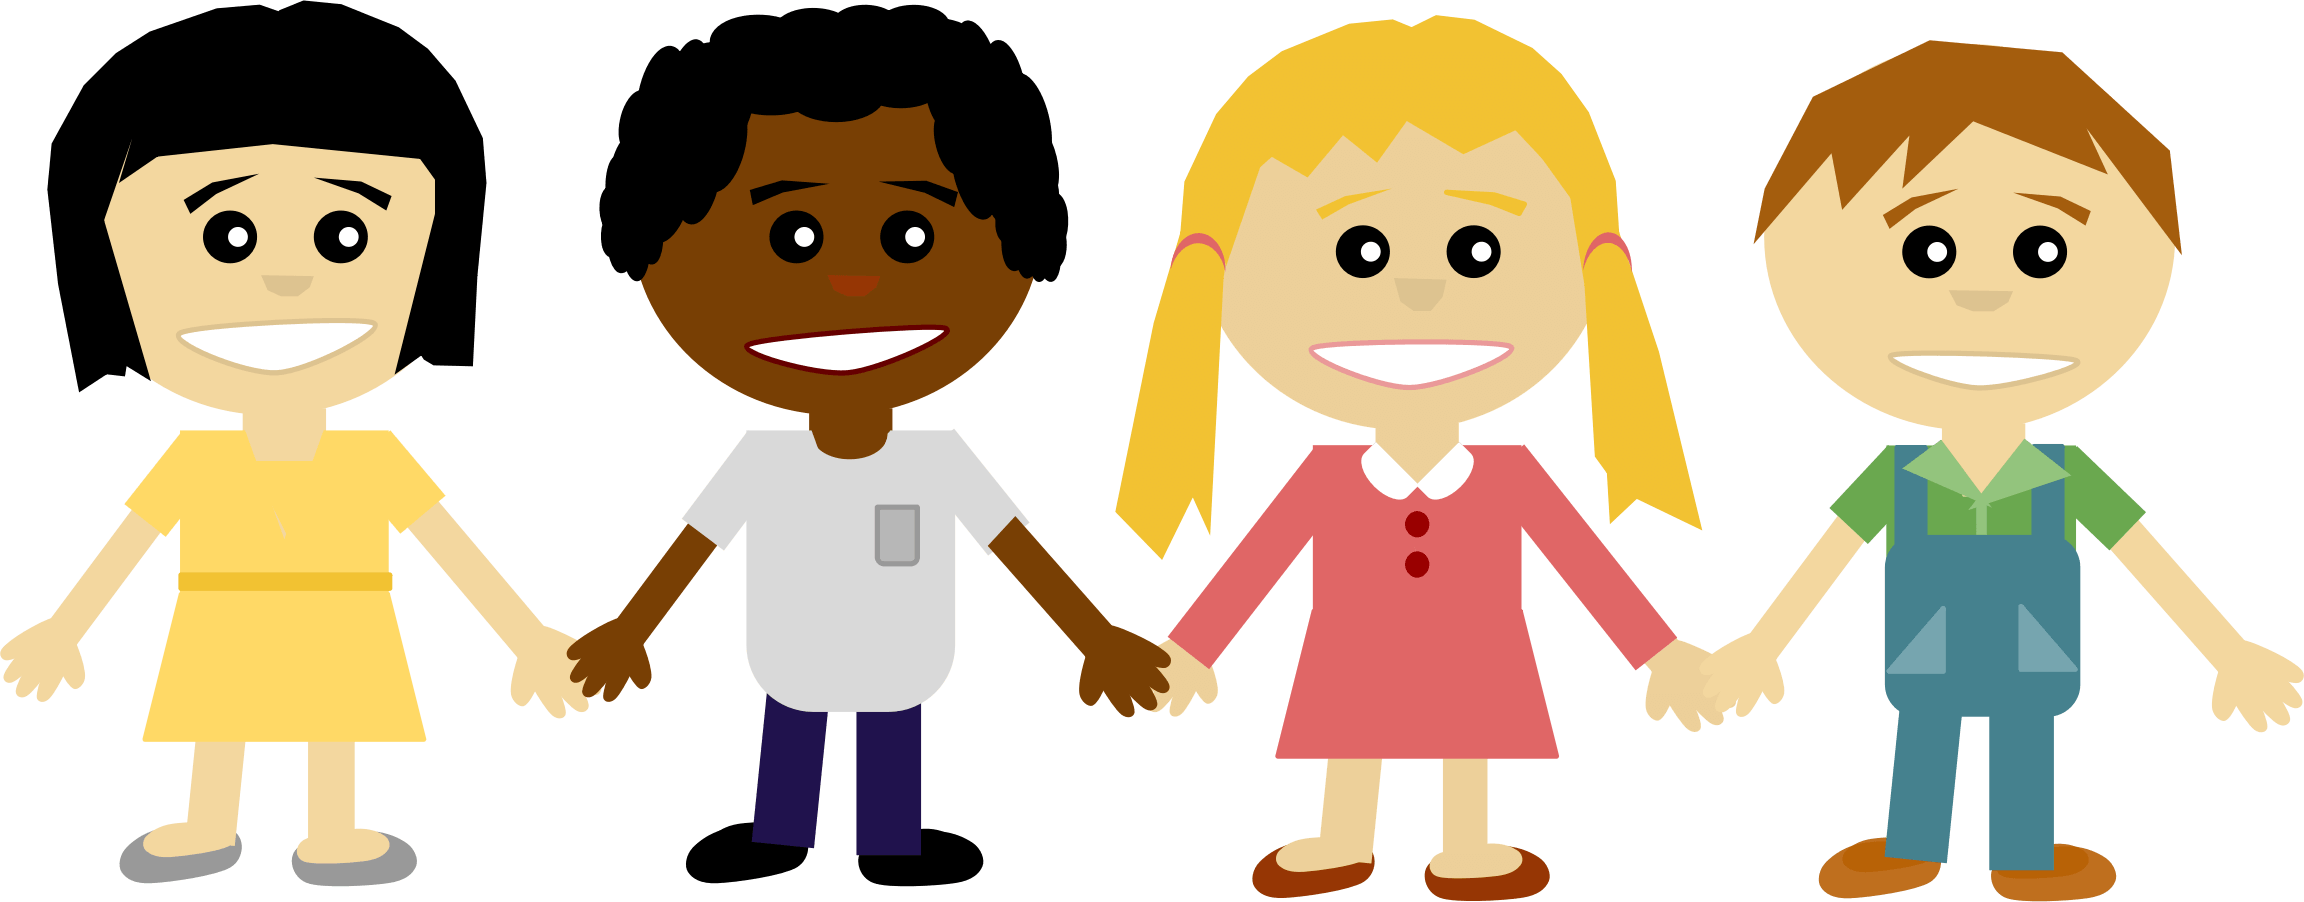 Hand clipart unity. Hold cliparts kids holding